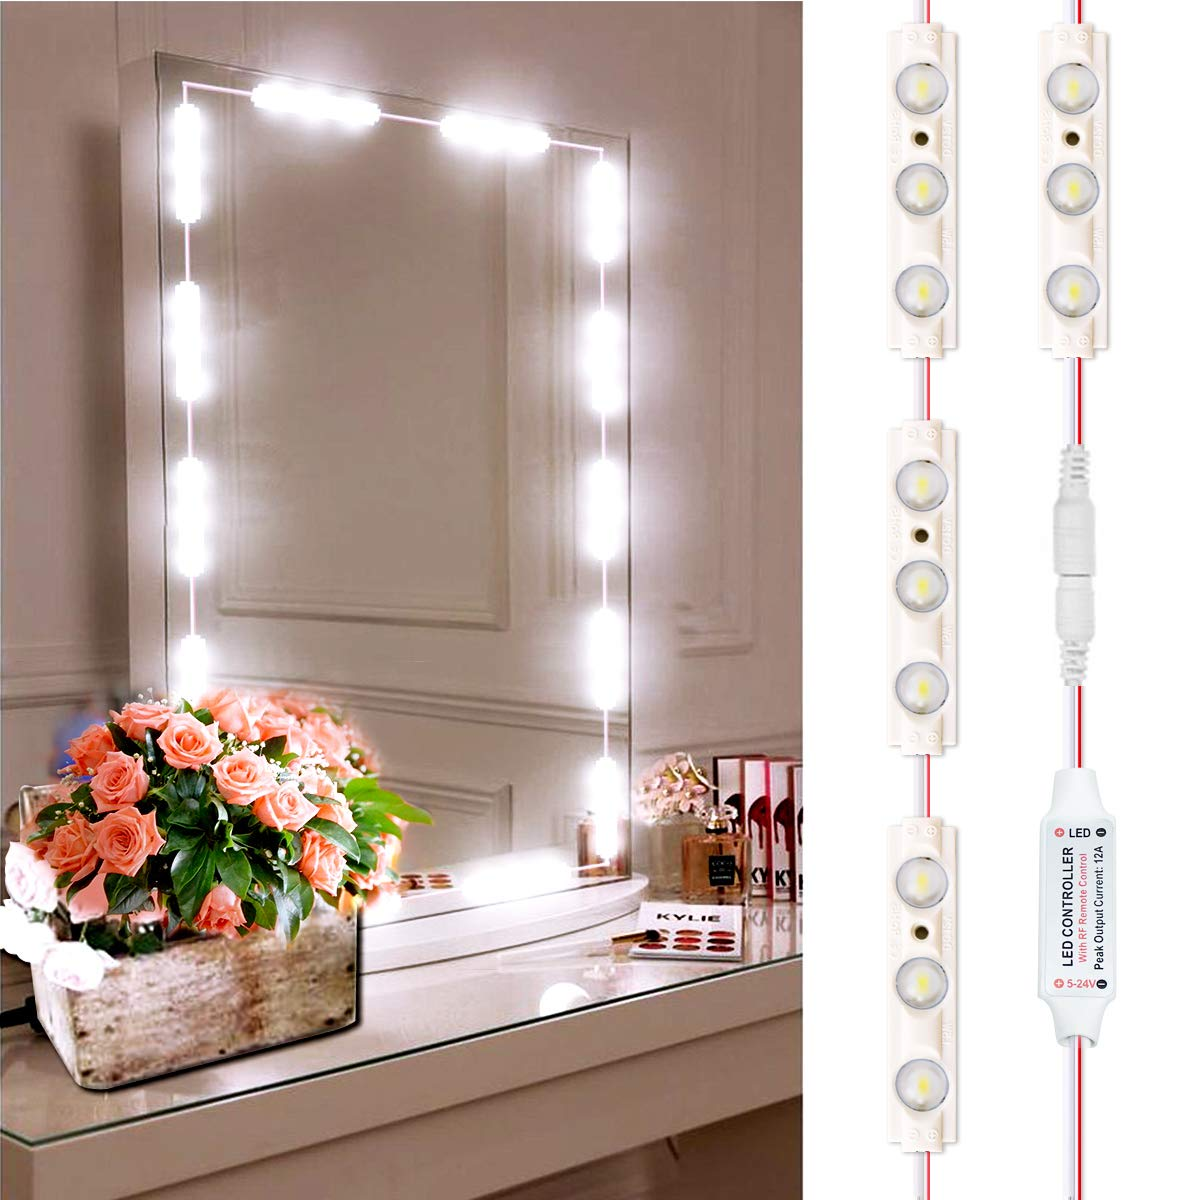 Led Mirror Lights, INKERSCOOP Vanity Light Strip Kit, DIY Bathroom Makeup Cosmetic Mirror Light with Remote and Dimmer Switch, 12Ft 25Groups 75Leds White Lights